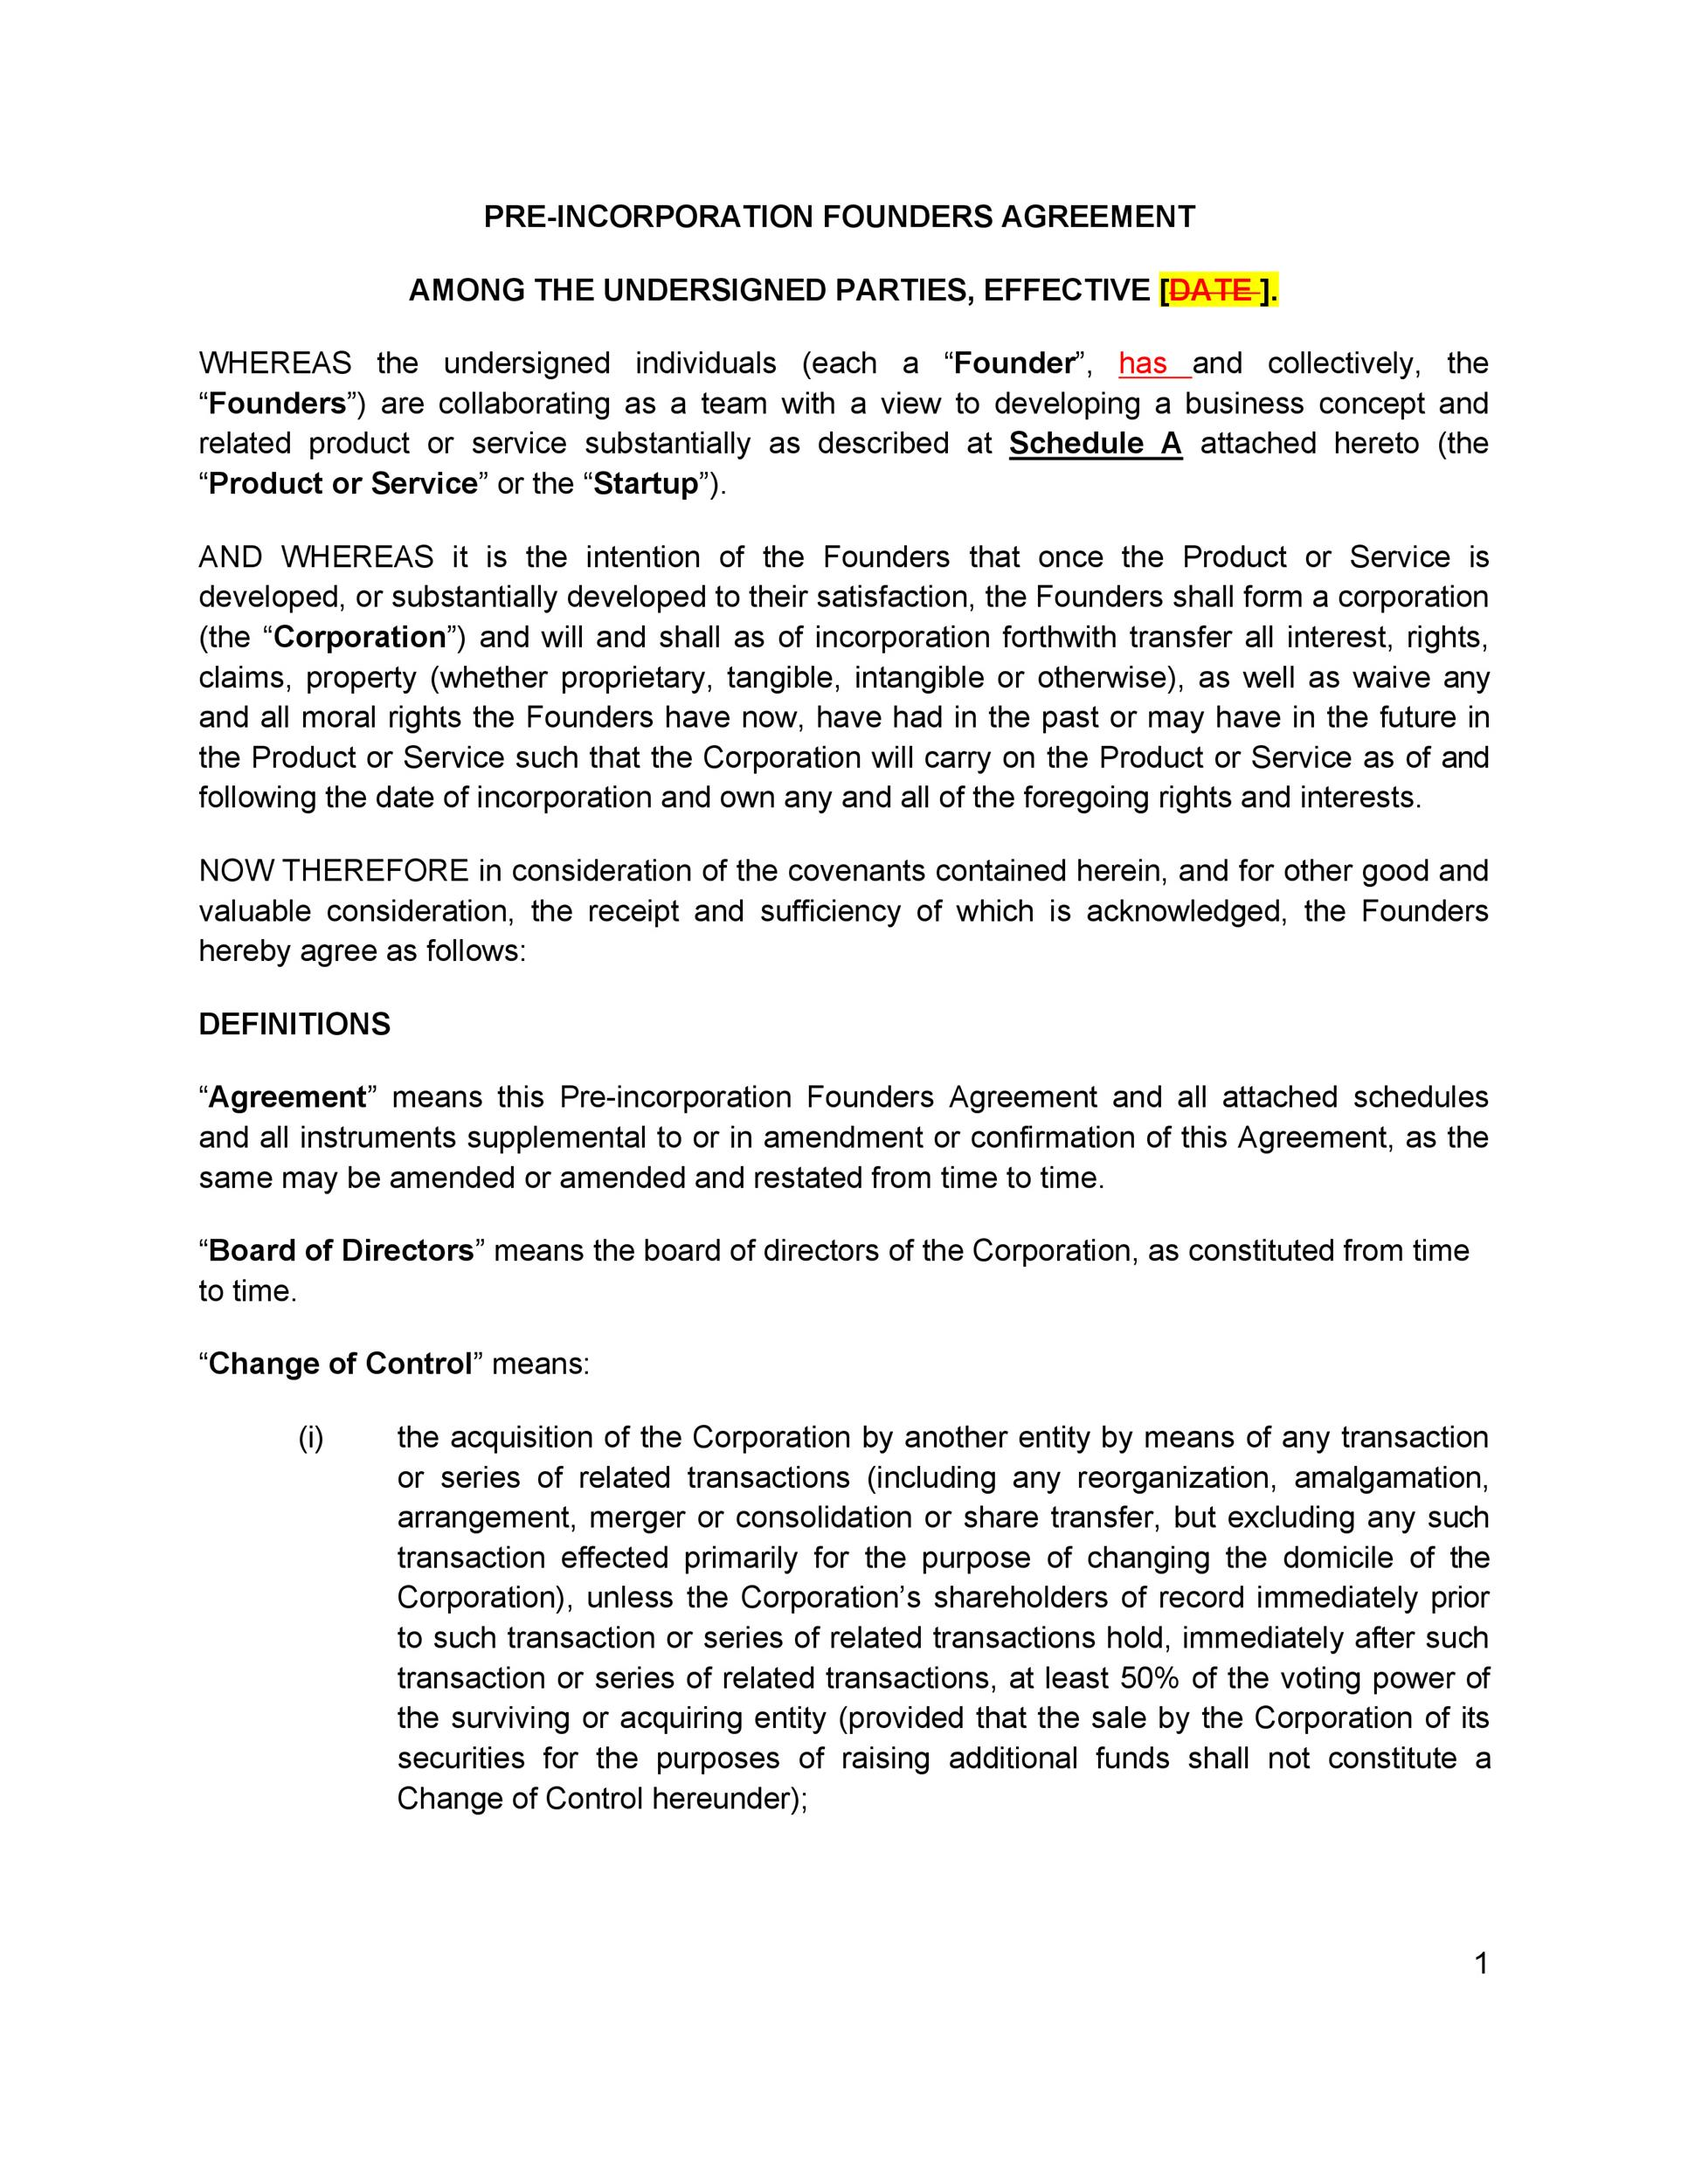 Free founders agreement 13